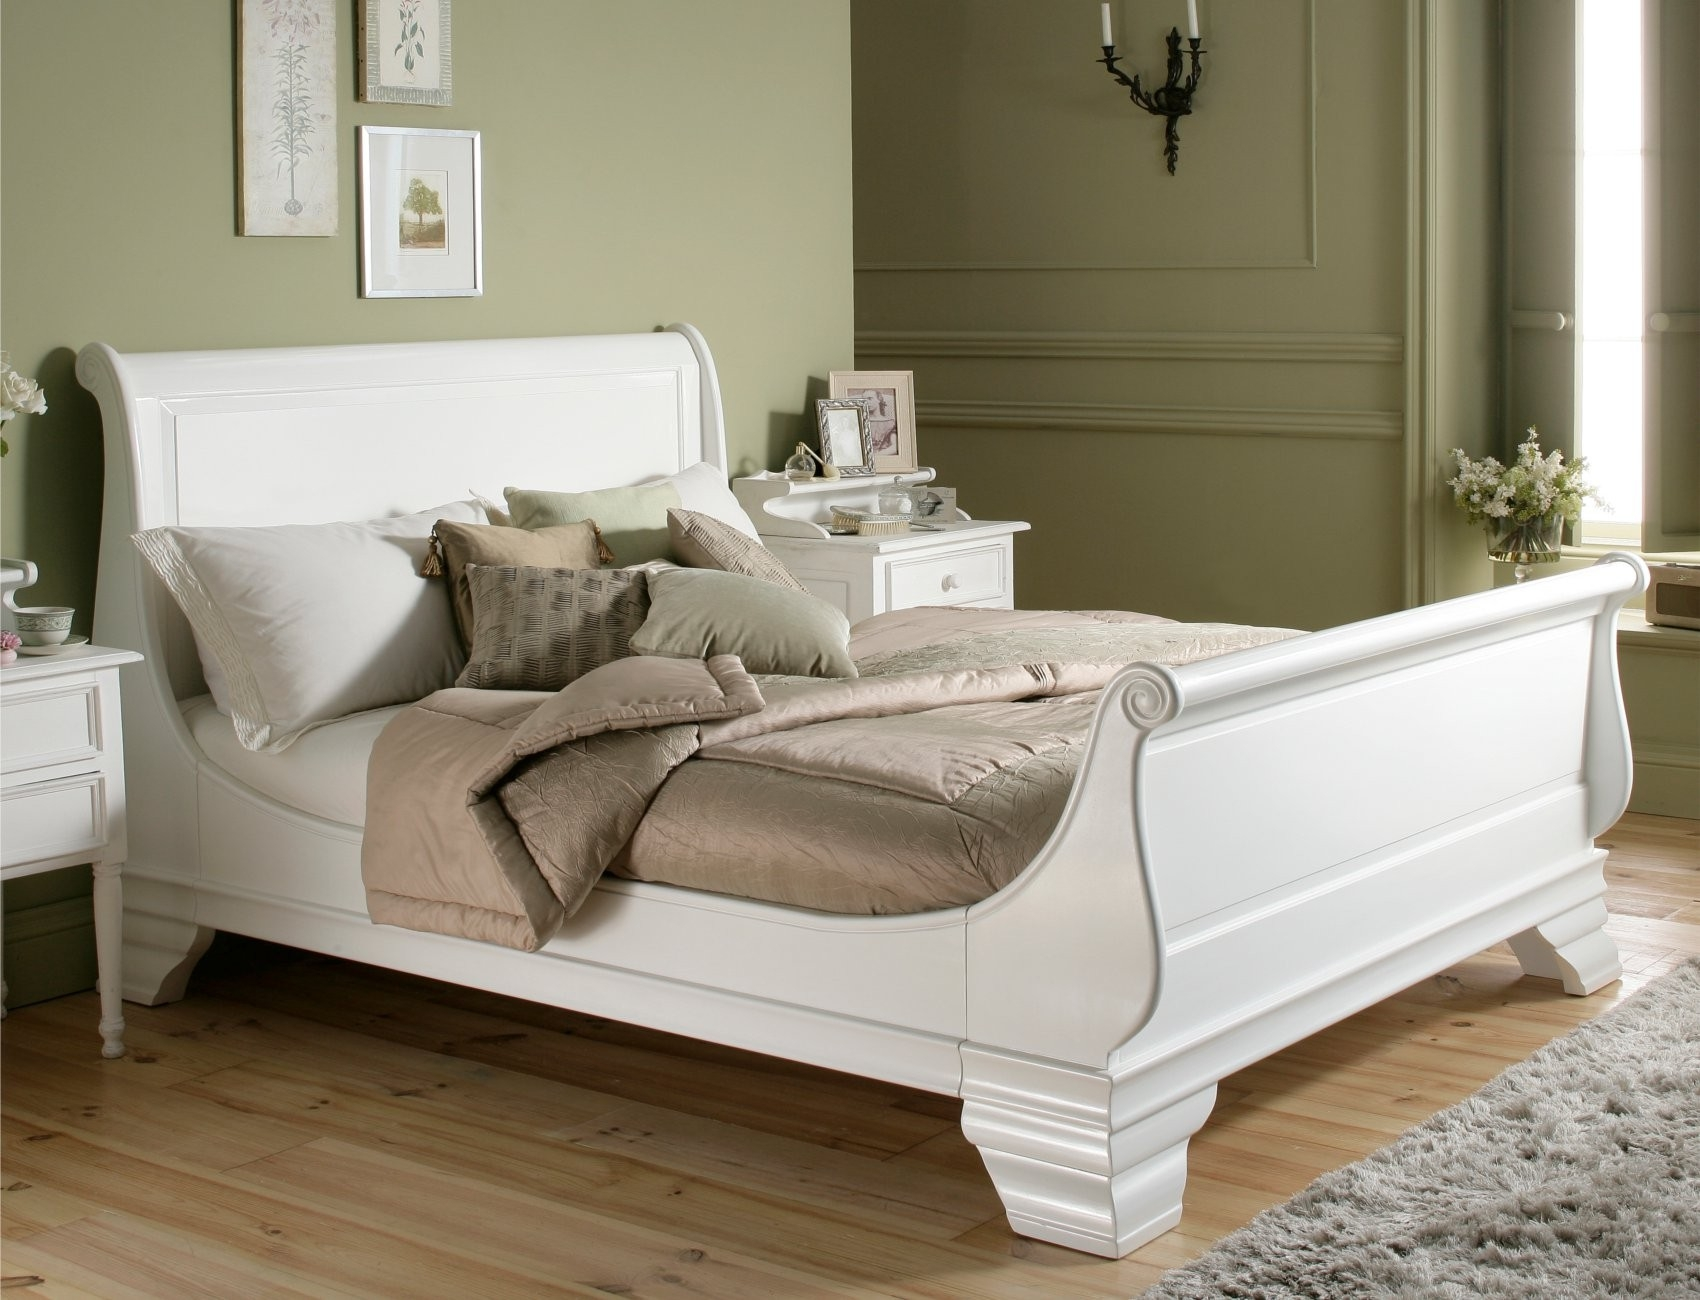 King Size White Wooden Bed Frame